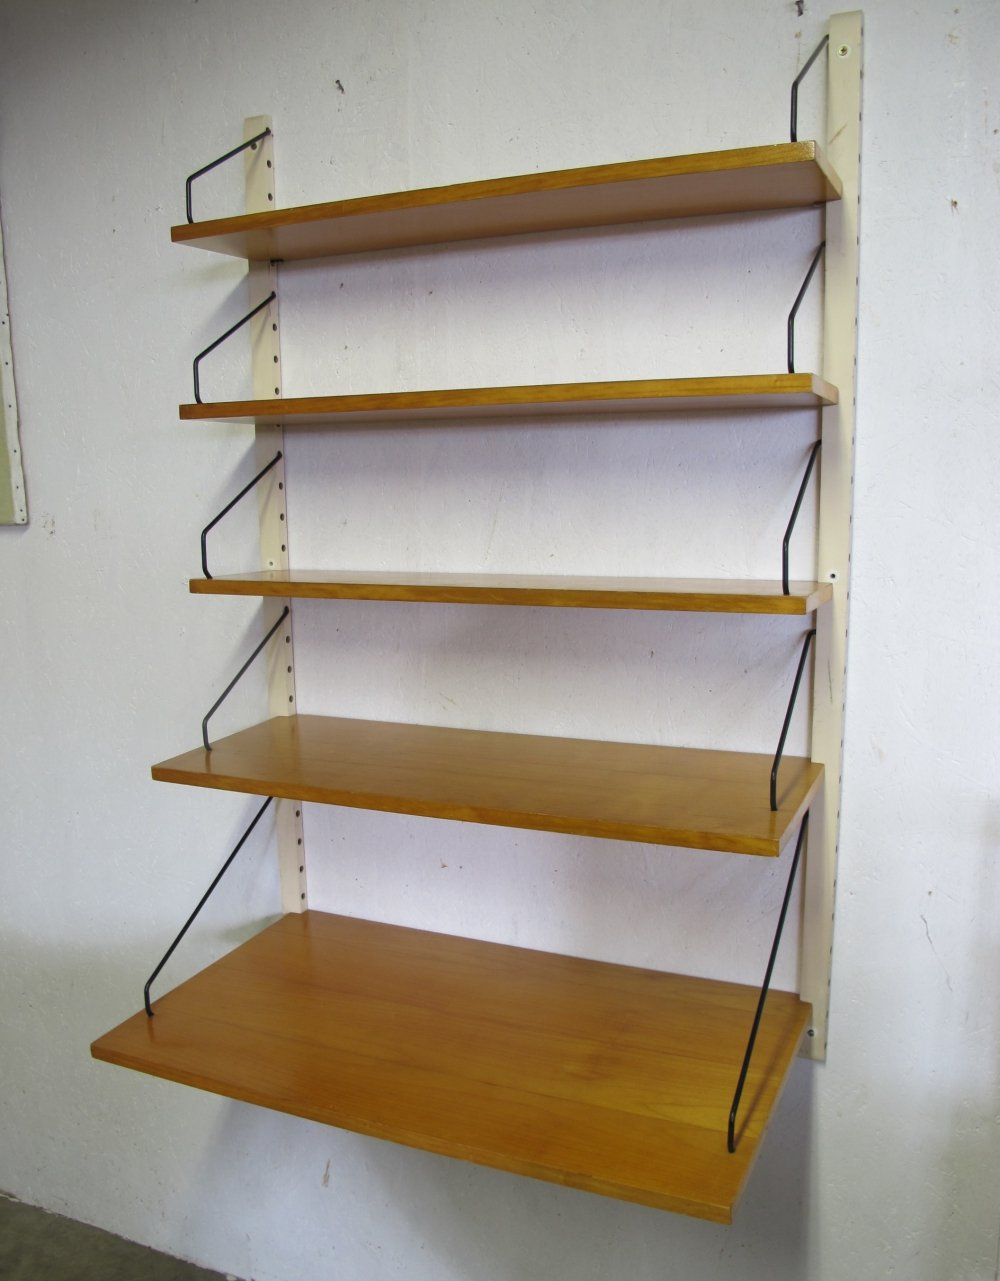 Vintage Walnut Wall Shelf by Poul Cadovius for Royal System, 1960s